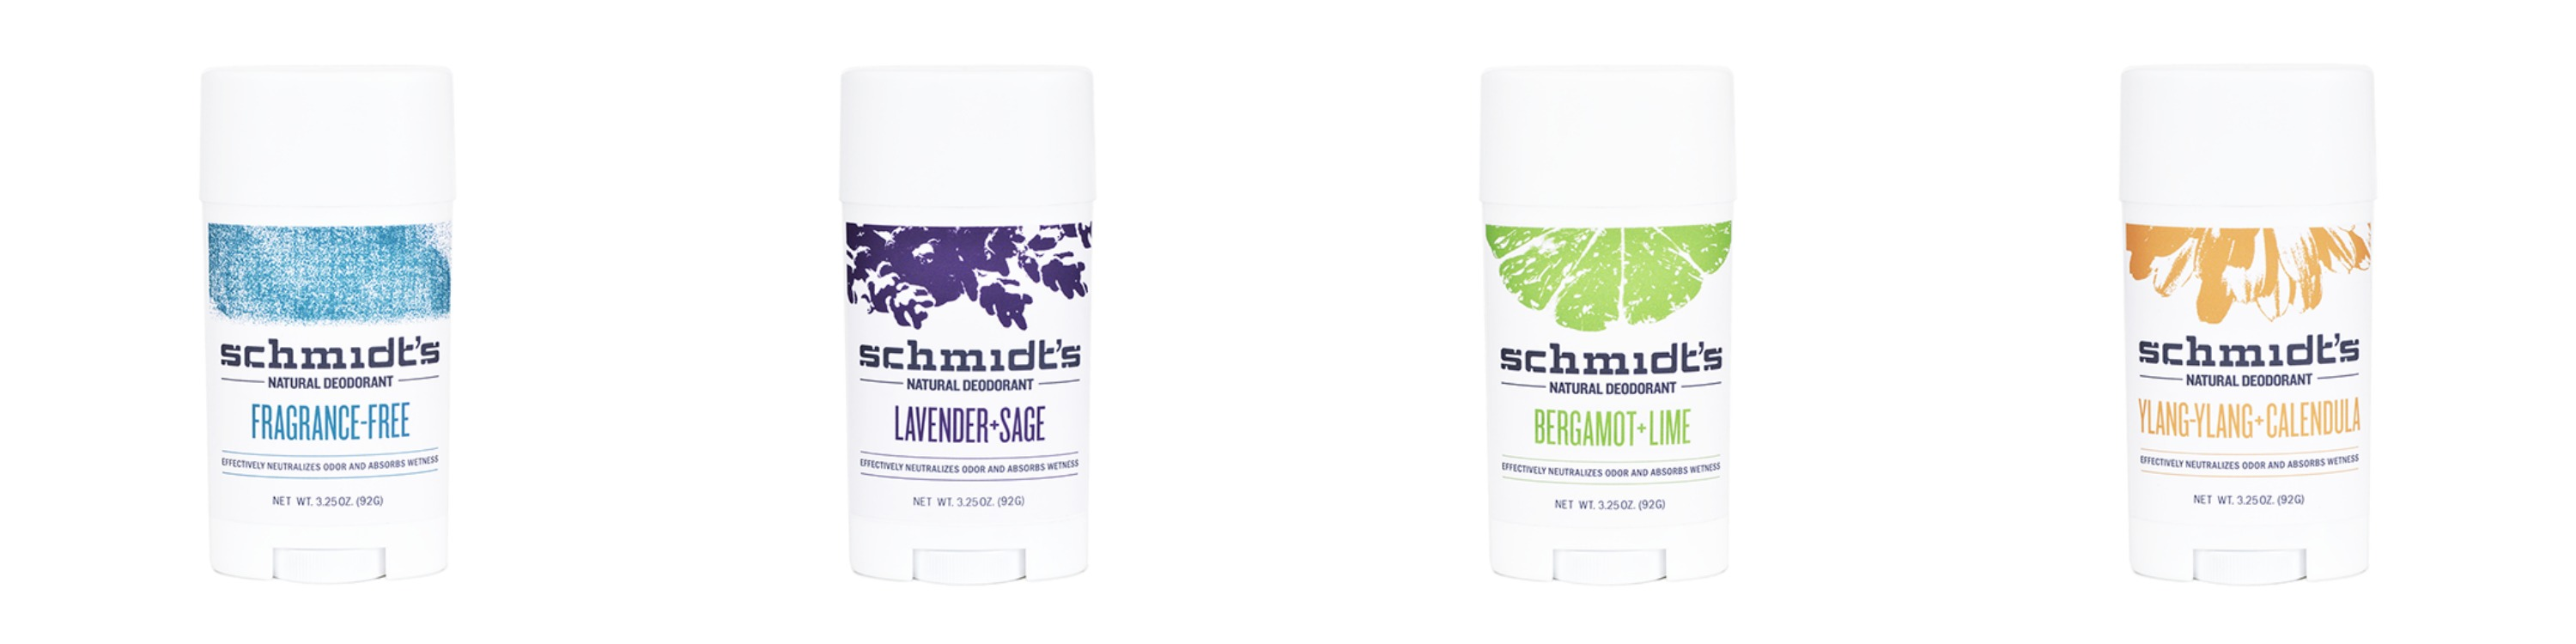 schmidts natural deodorant products